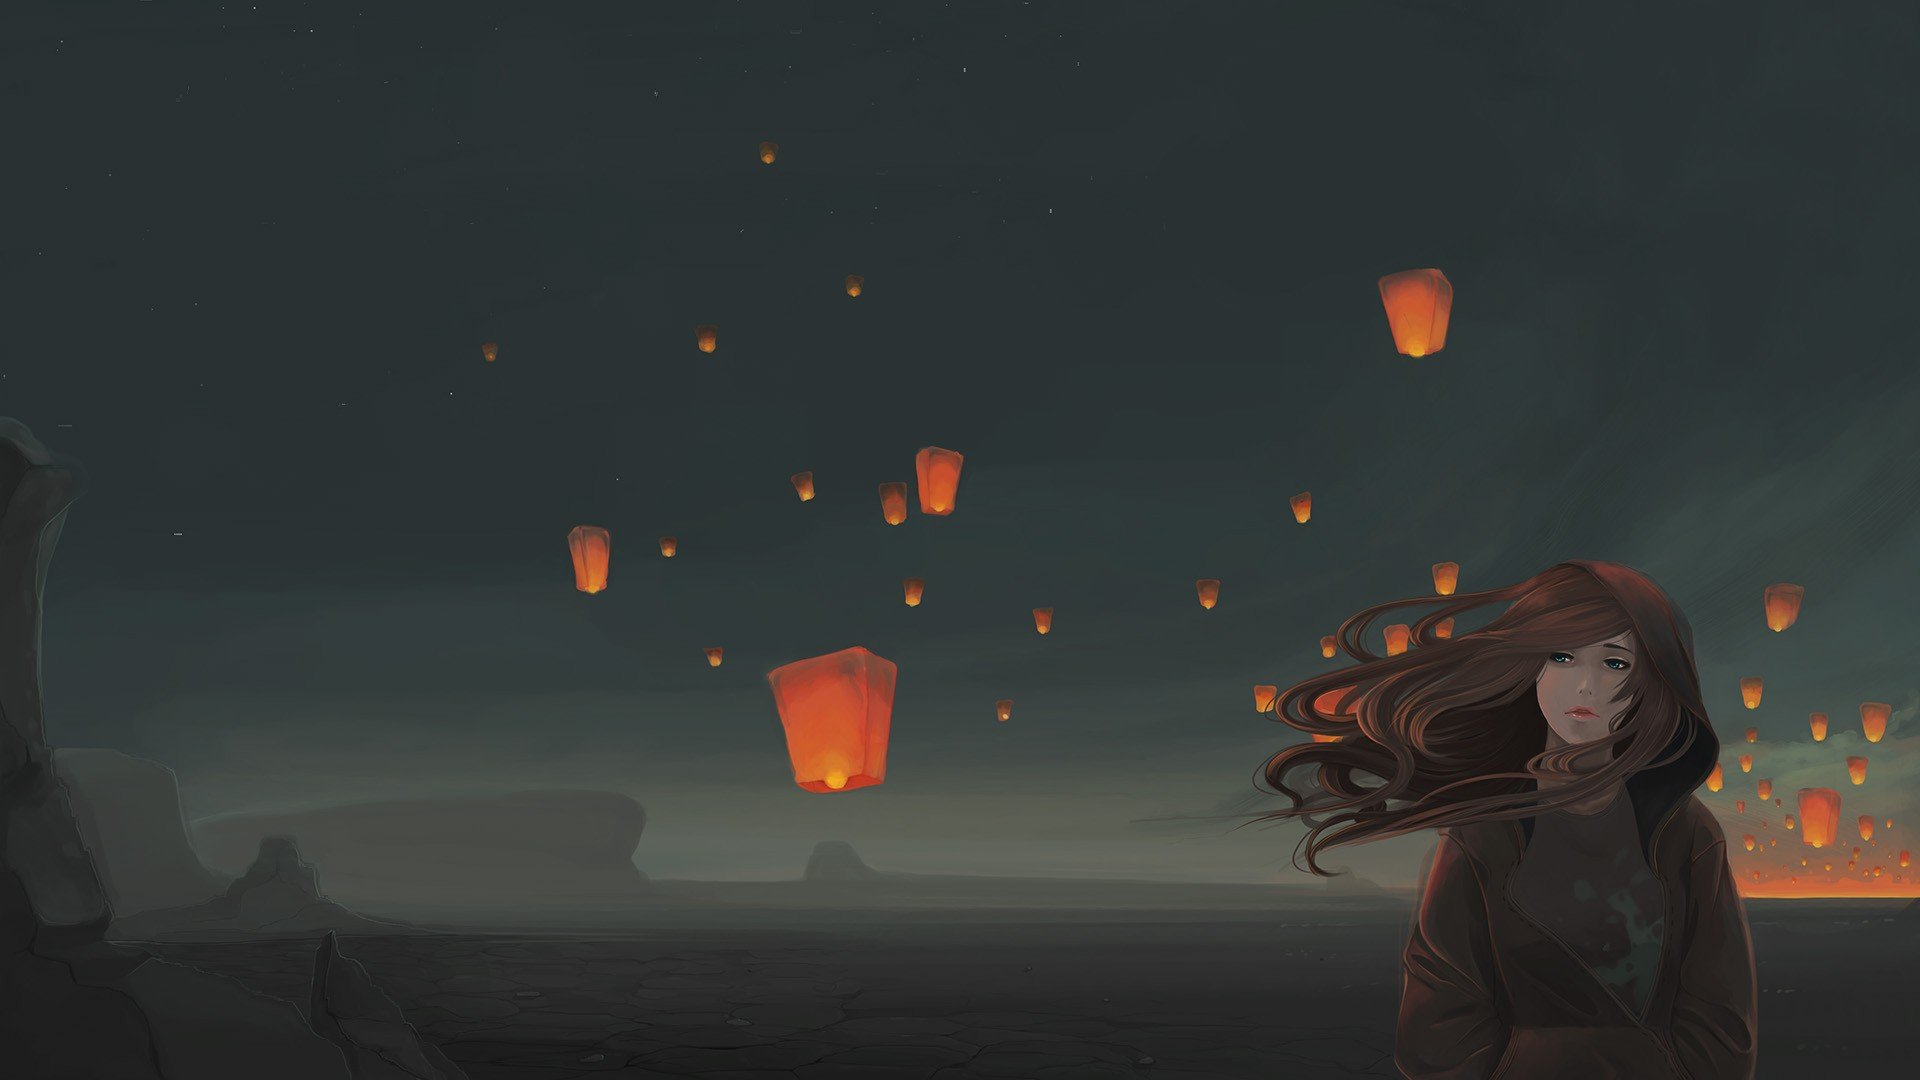 Sky Lanterns Wallpaper Iphone Sky Lanterns Windy Original Characters Night Hd